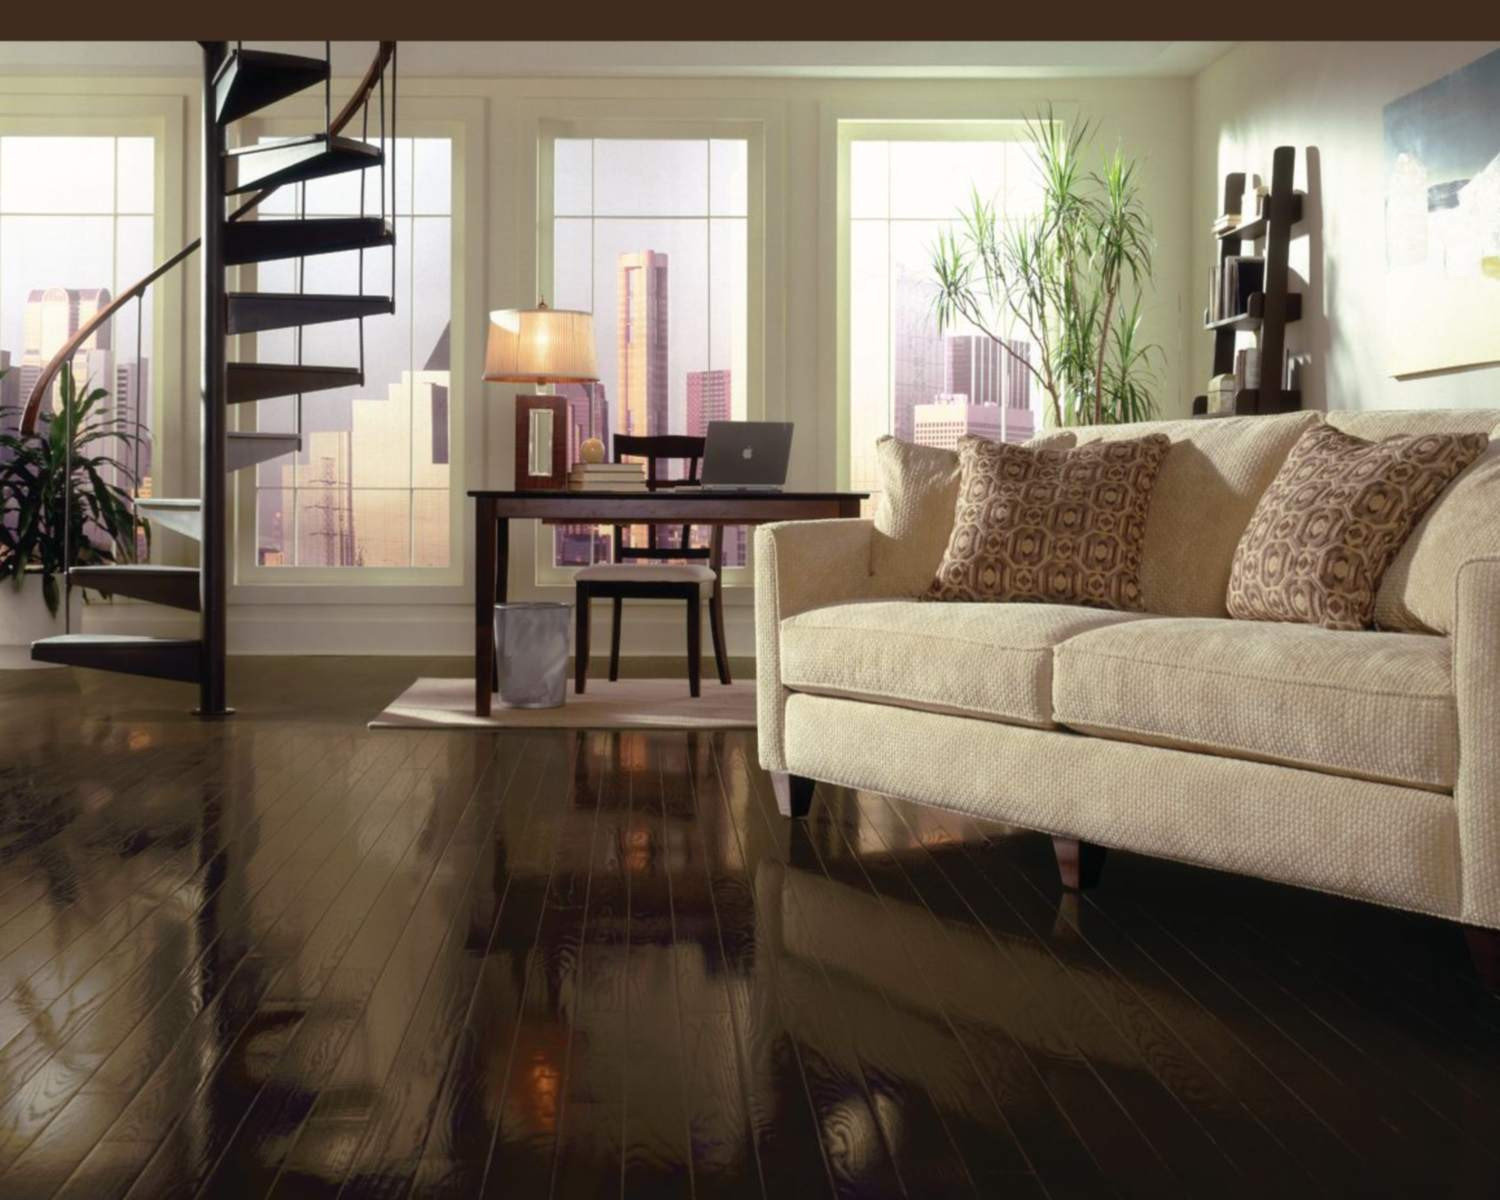 11 attractive How to Clean Bruce Engineered Hardwood Floors 2021 free download how to clean bruce engineered hardwood floors of top 5 brands for solid hardwood flooring in bruce